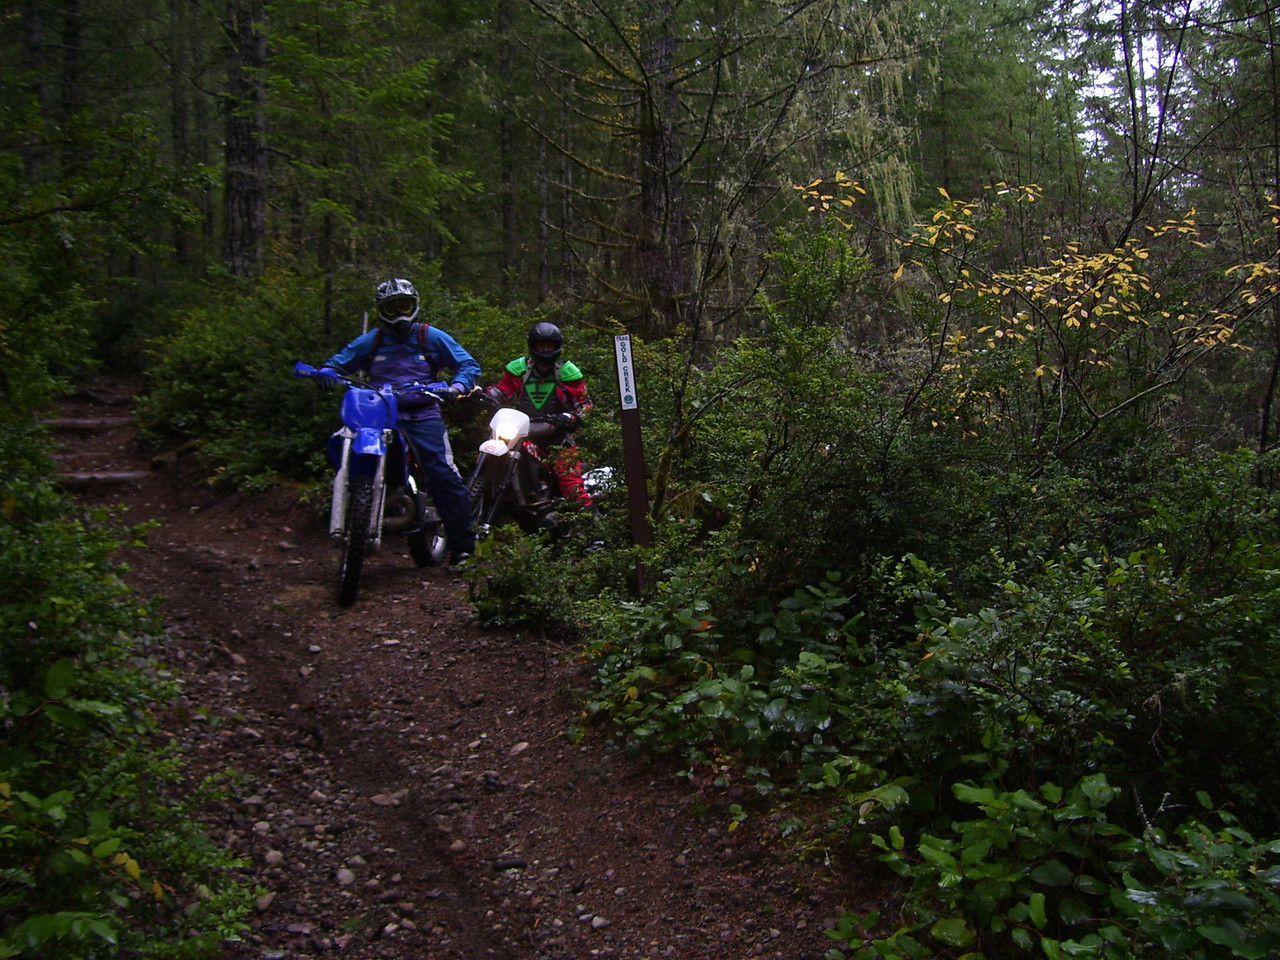 Sat. Nov 14, Green Mt. Ride. Justin & Seth on the Gold Creek Trail